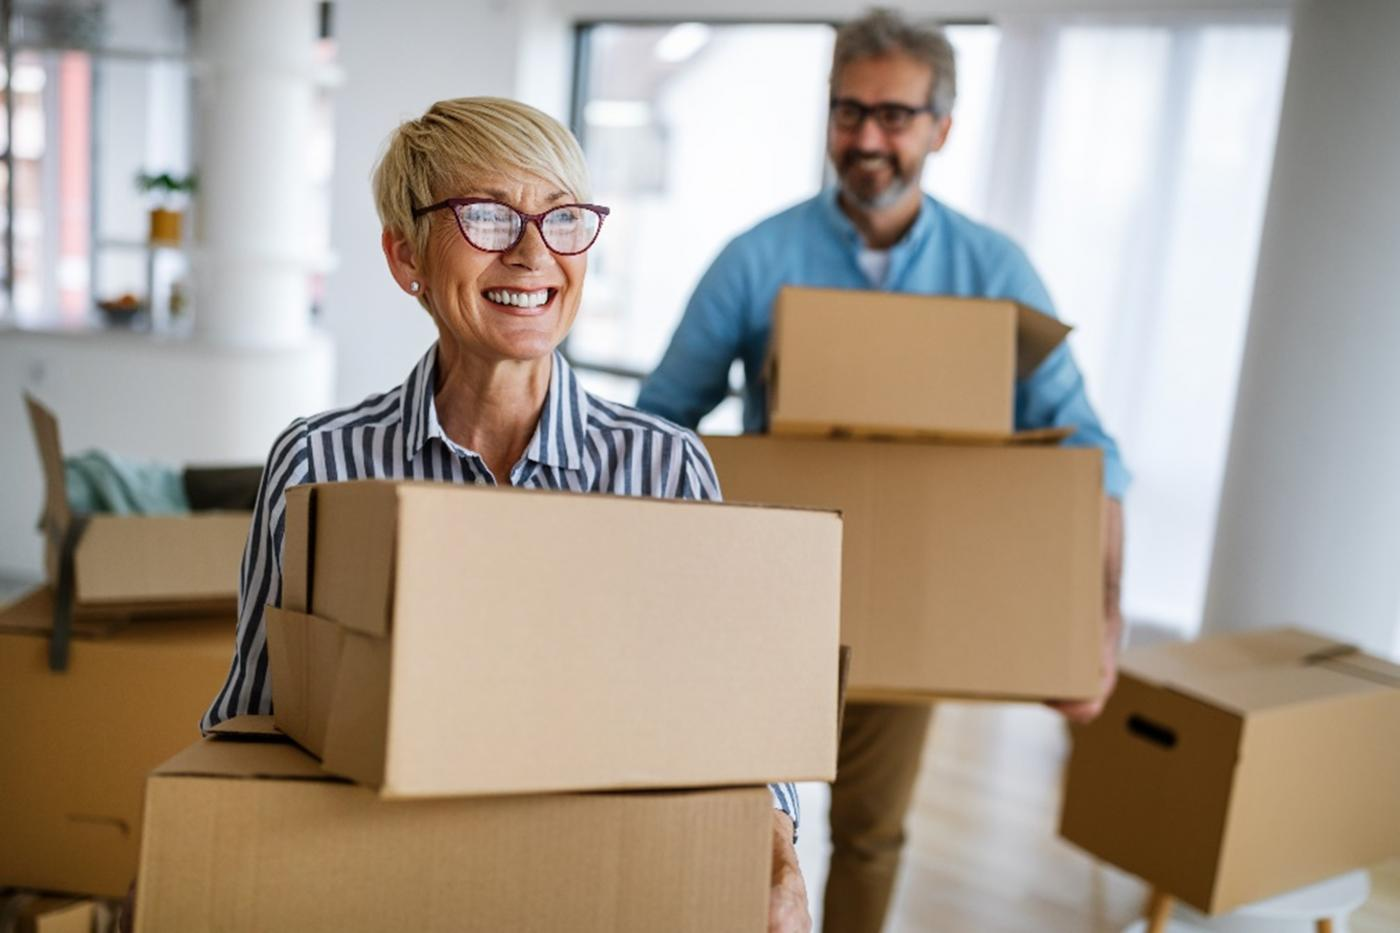 packing-list-for-moving-to-granville-heights-retirement-living-community-milwaukee-wi